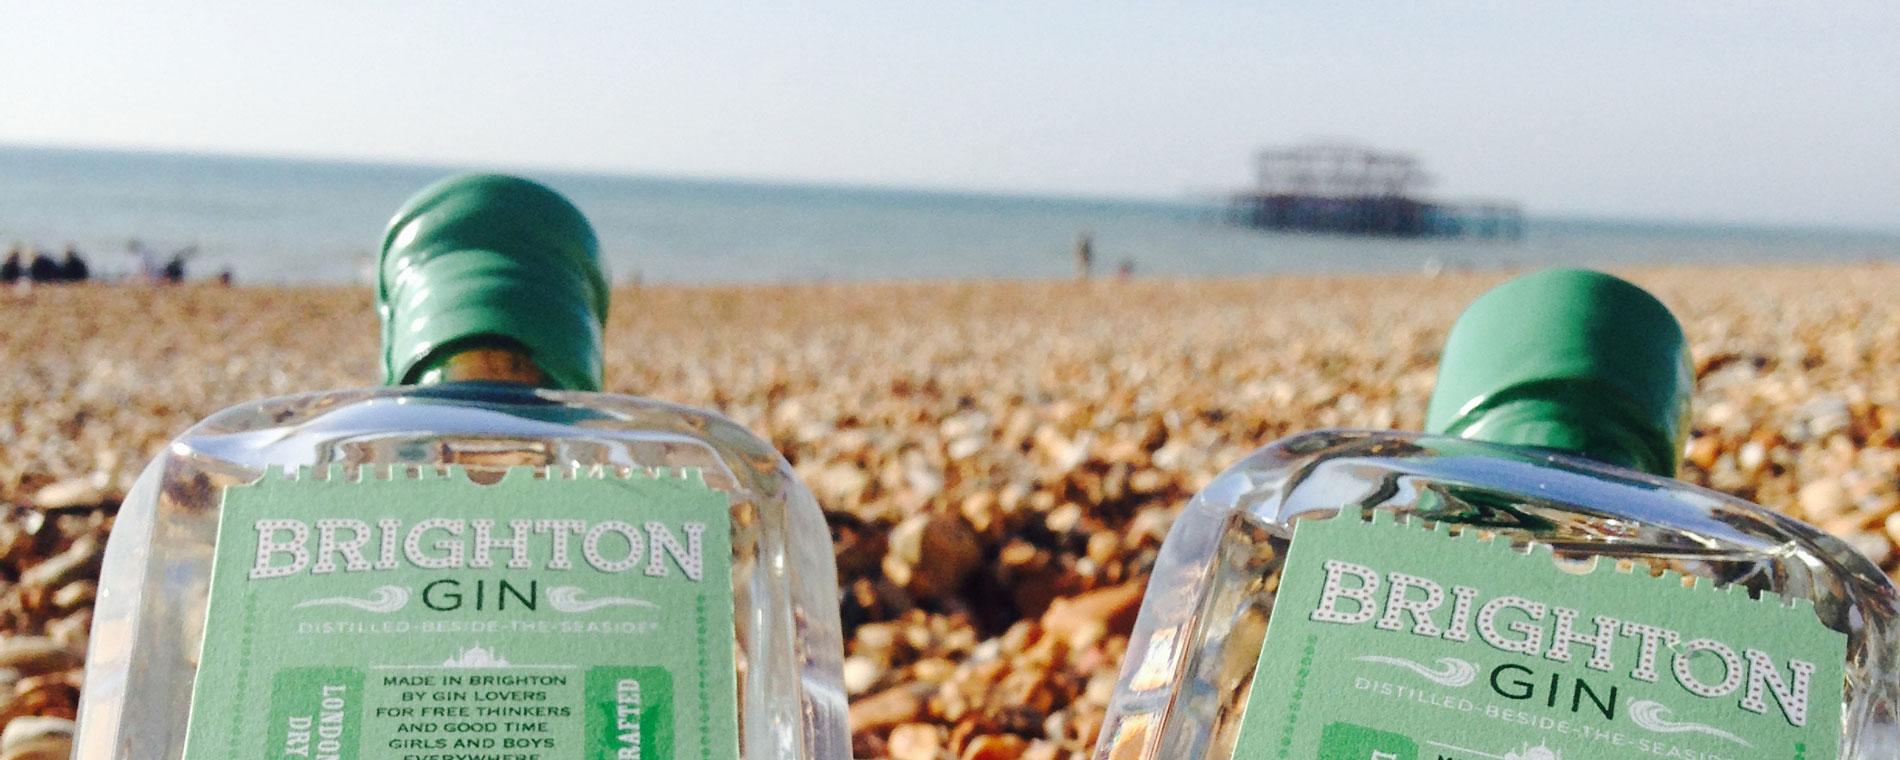 All photos courtesy Brighton Gin.